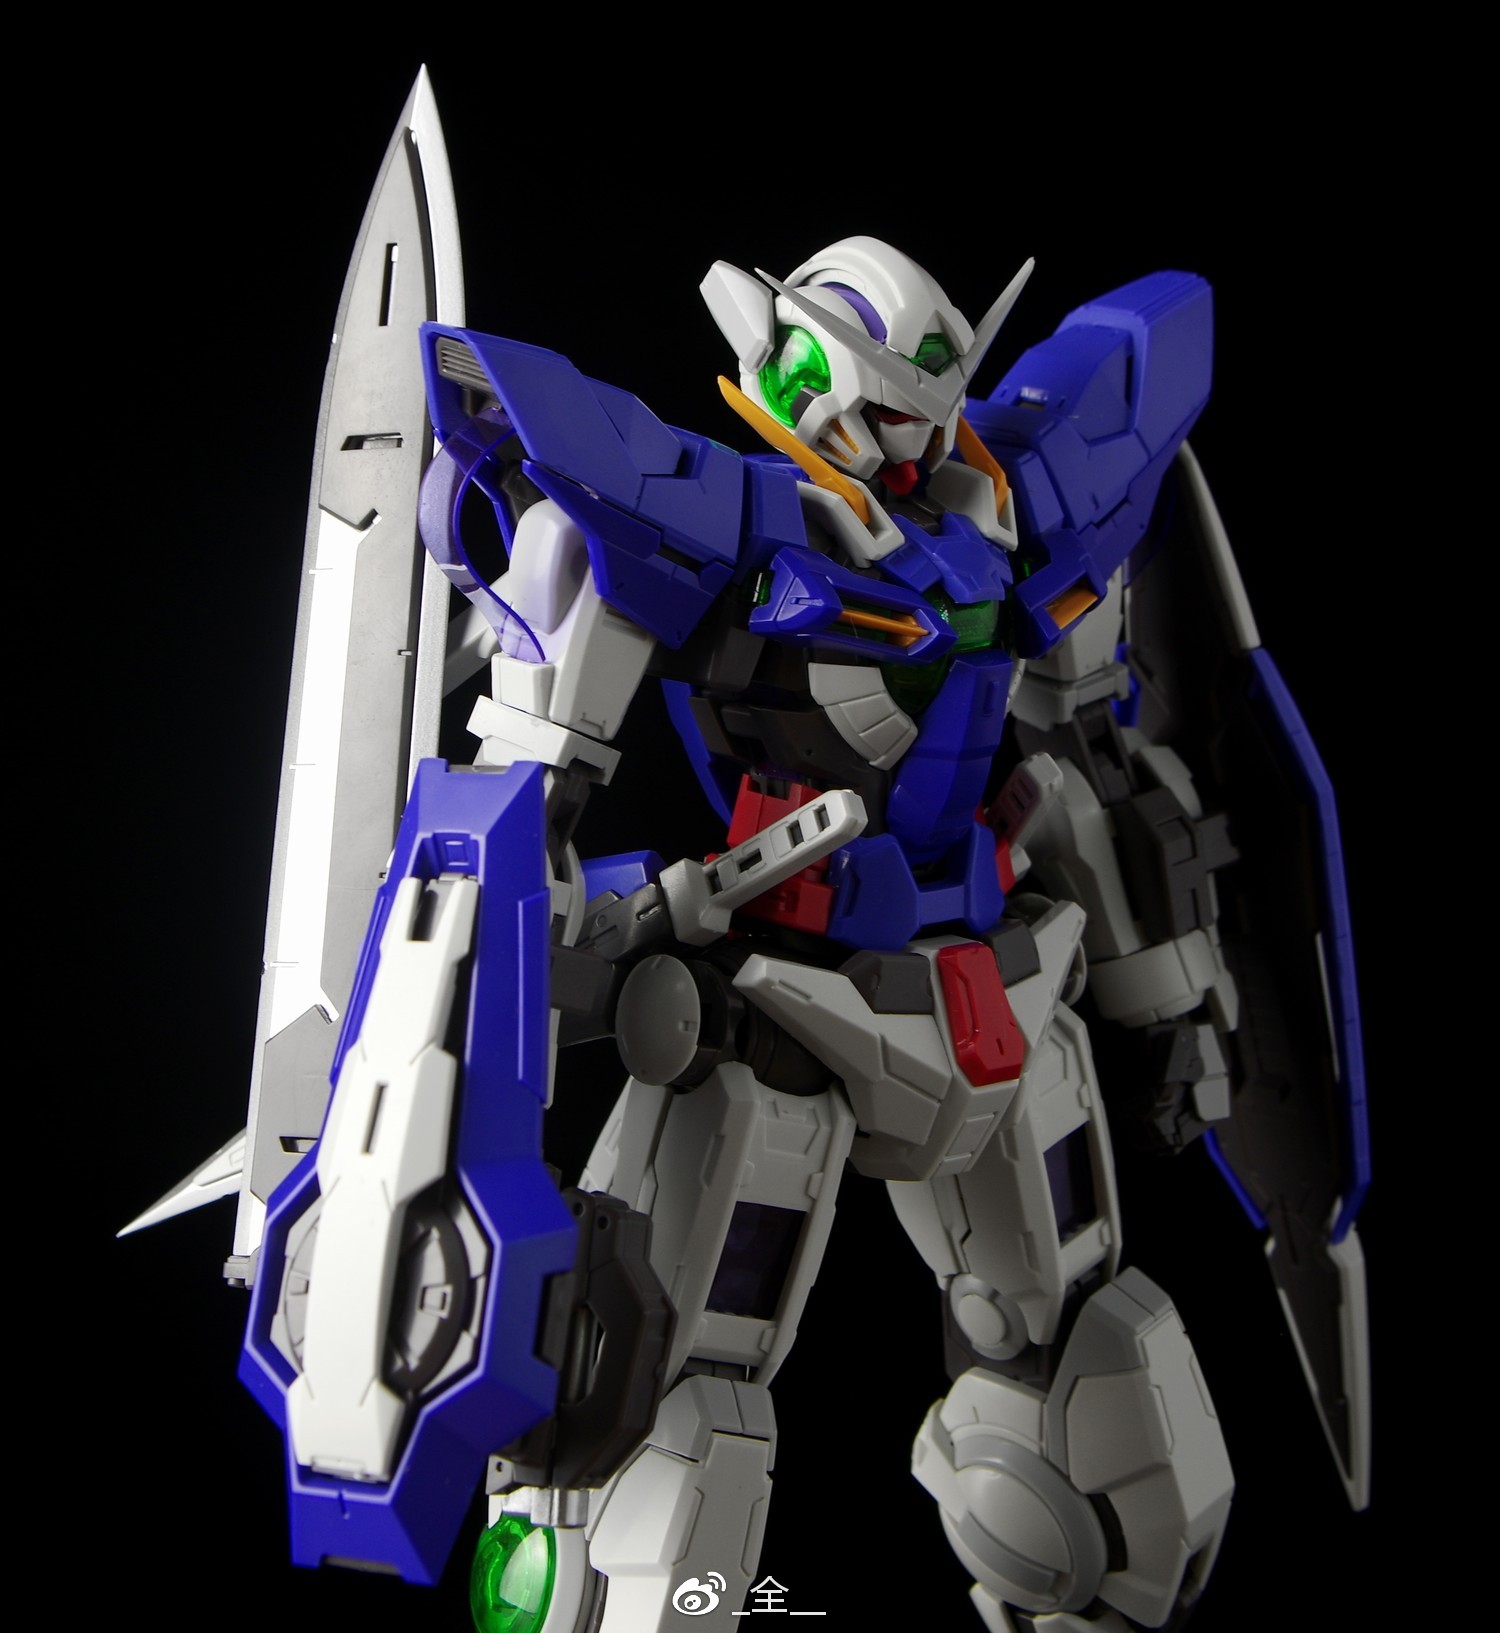 S269_mg_exia_led_hobby_star_inask_067.jpg